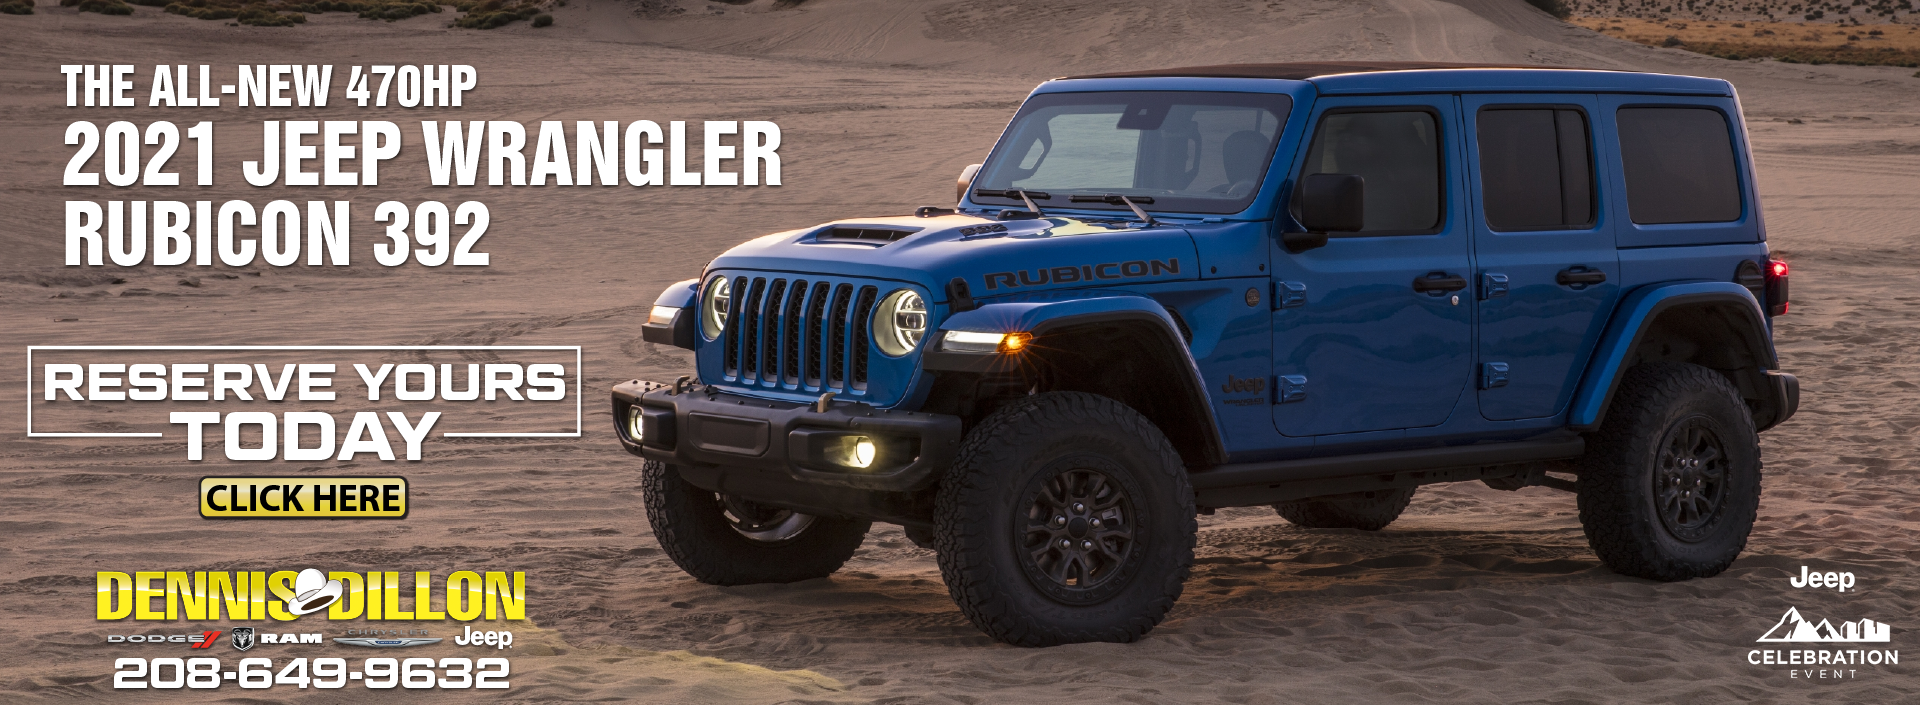 CJDR BANNER 2021 JEEP WRANGLER March and April 2021